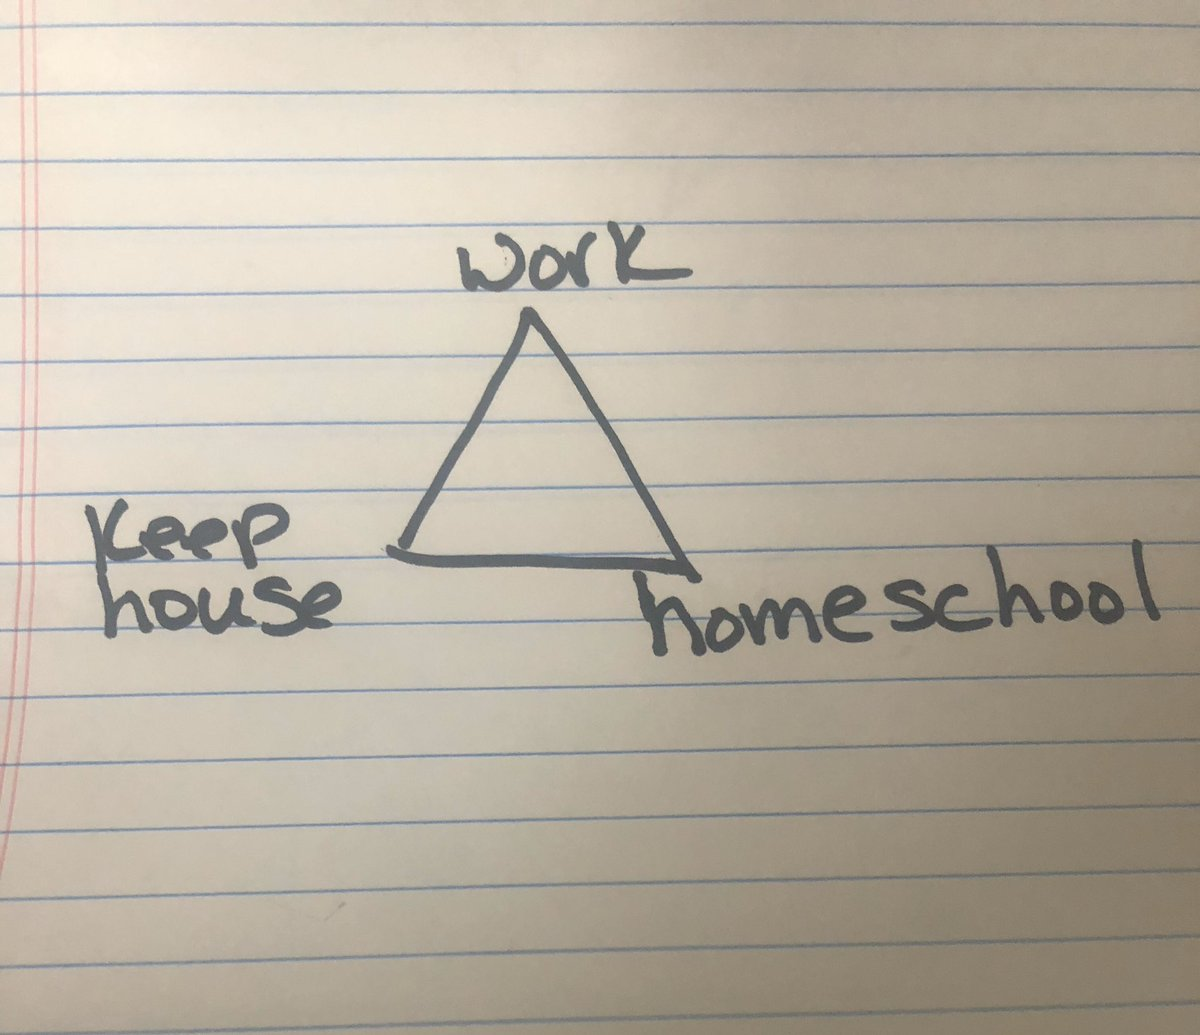 My thoughts on working from home/quarantine. You can only successfully manage 2 points on the triangle.